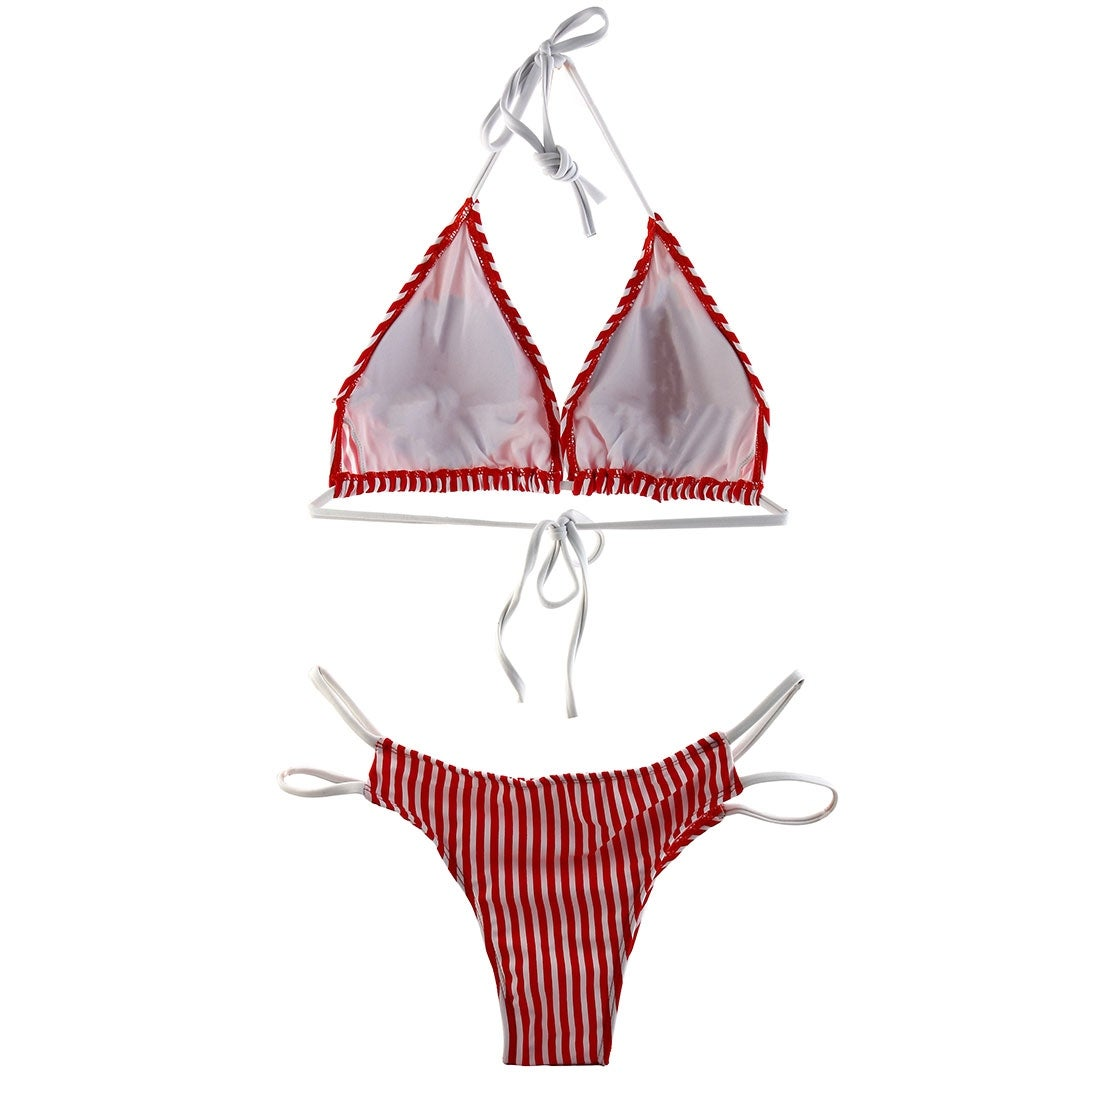 28141d45d9 Stripe Print Padding Bra Swimwear Bathing Suit Women Swimsuit Bikini Set  Red S